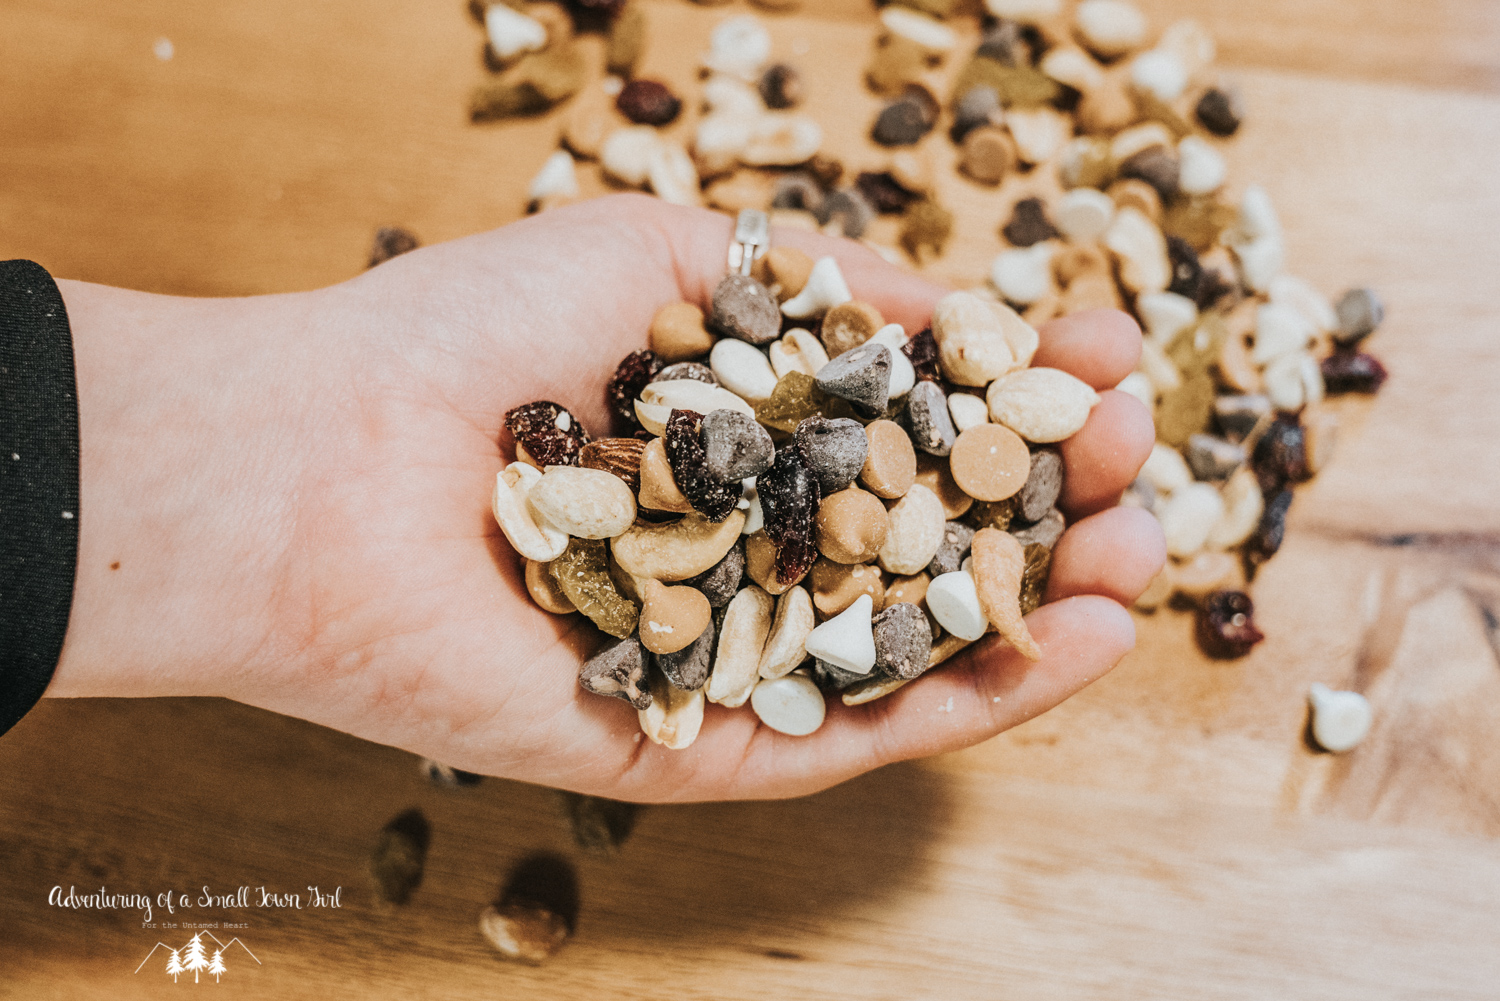 Homemade Trail Mix Recipe by Adventuring of a Small Town Girl (ASTG) - No Bake Raw Vegan Trail Mix - Make your own trail mix-29.jpg